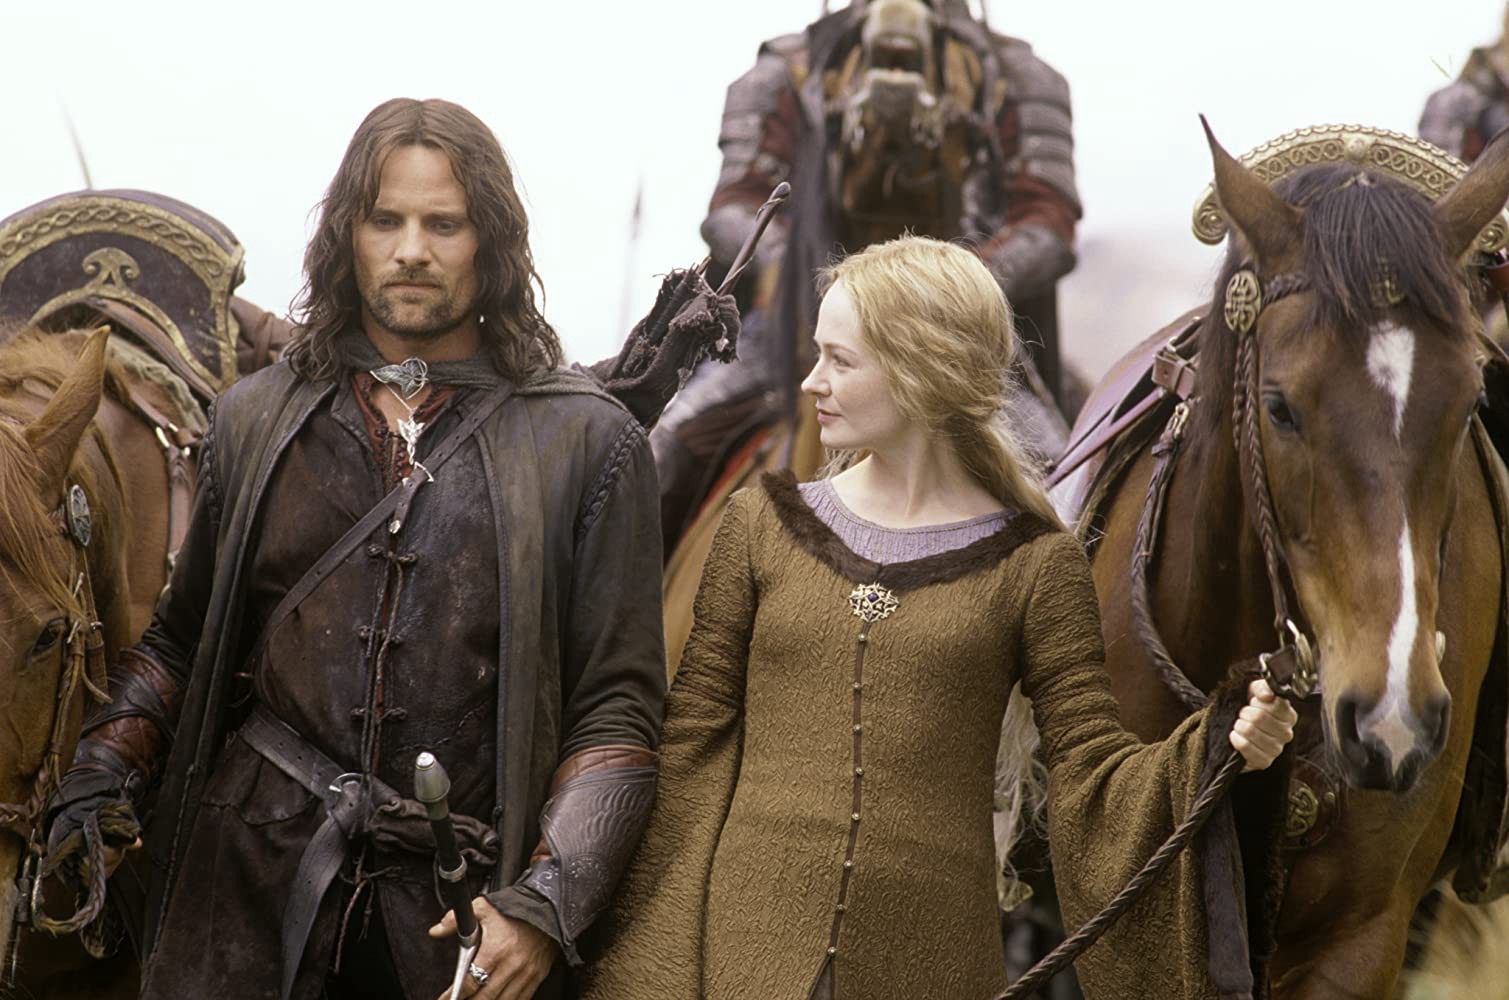 lord of the rings the two towers stream online free